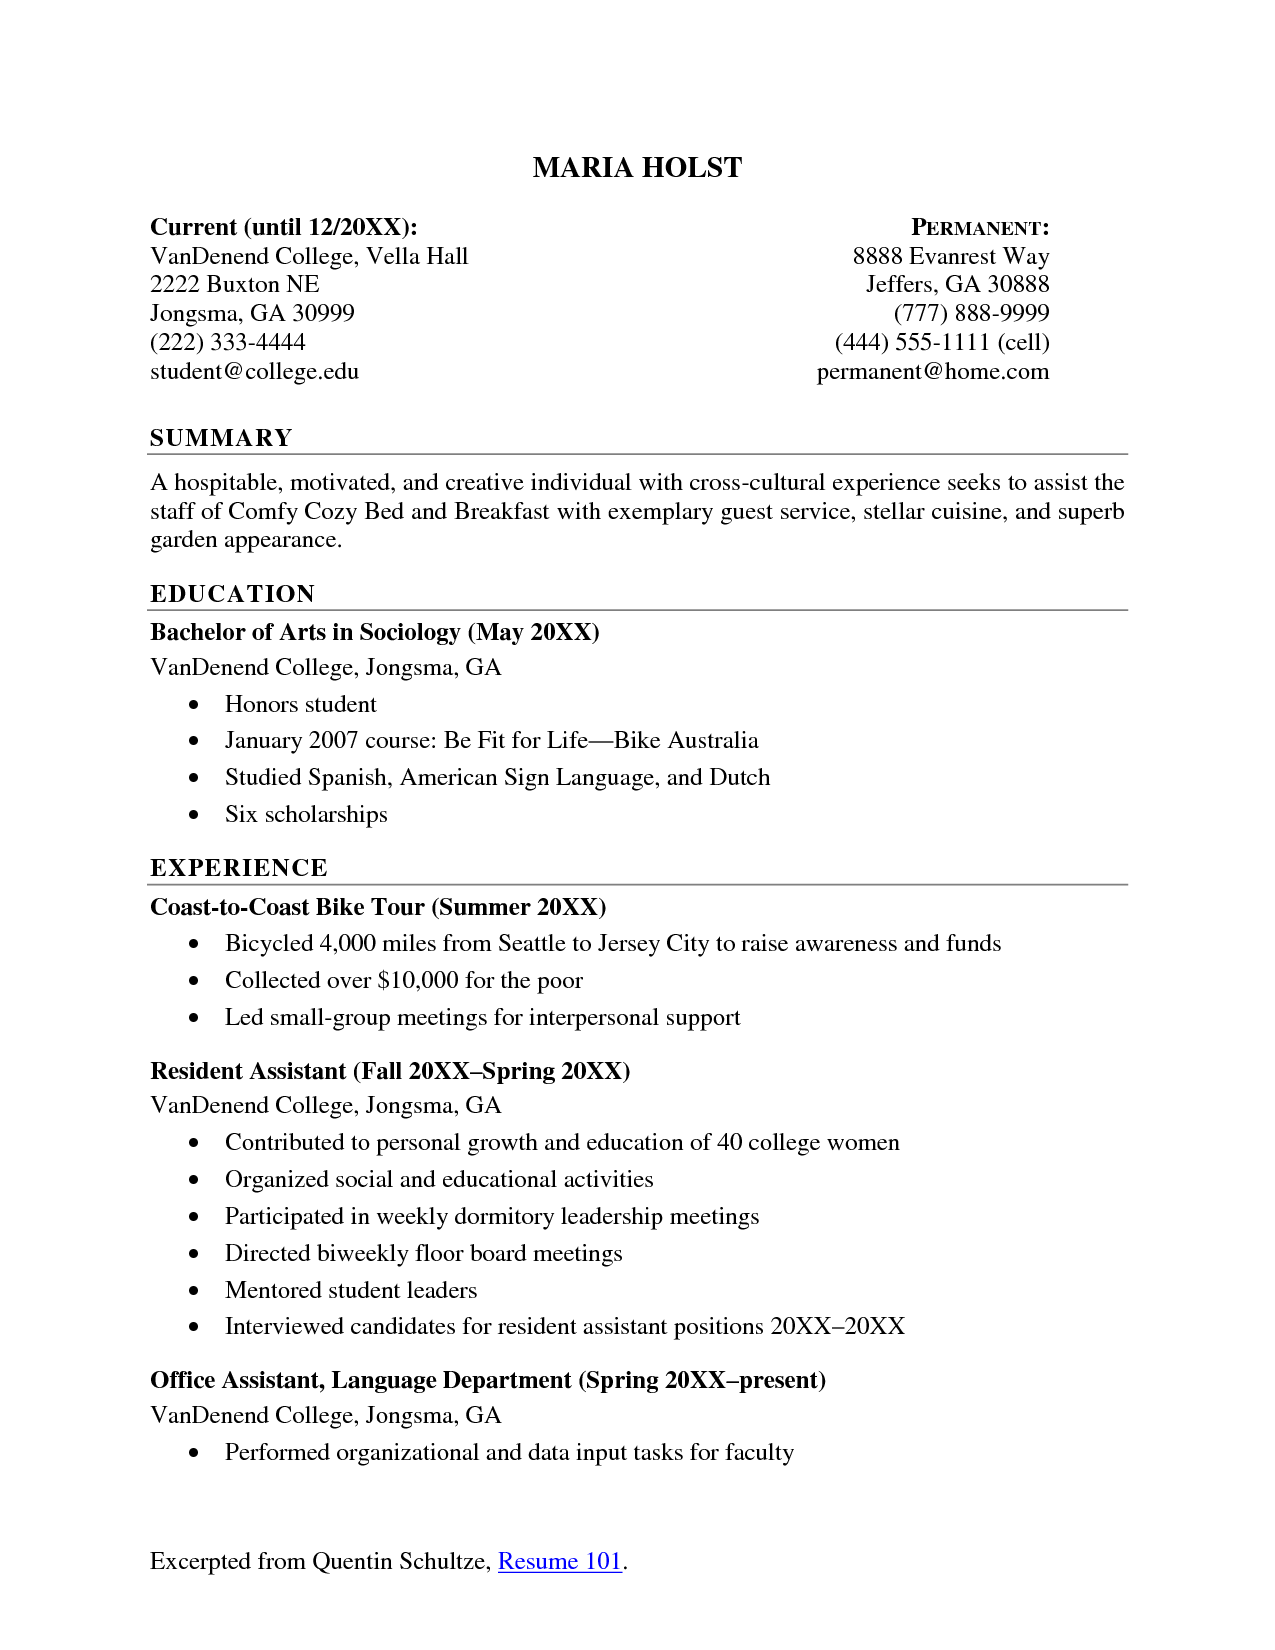 Best Resume Format 2015 University Student Google Search Resume